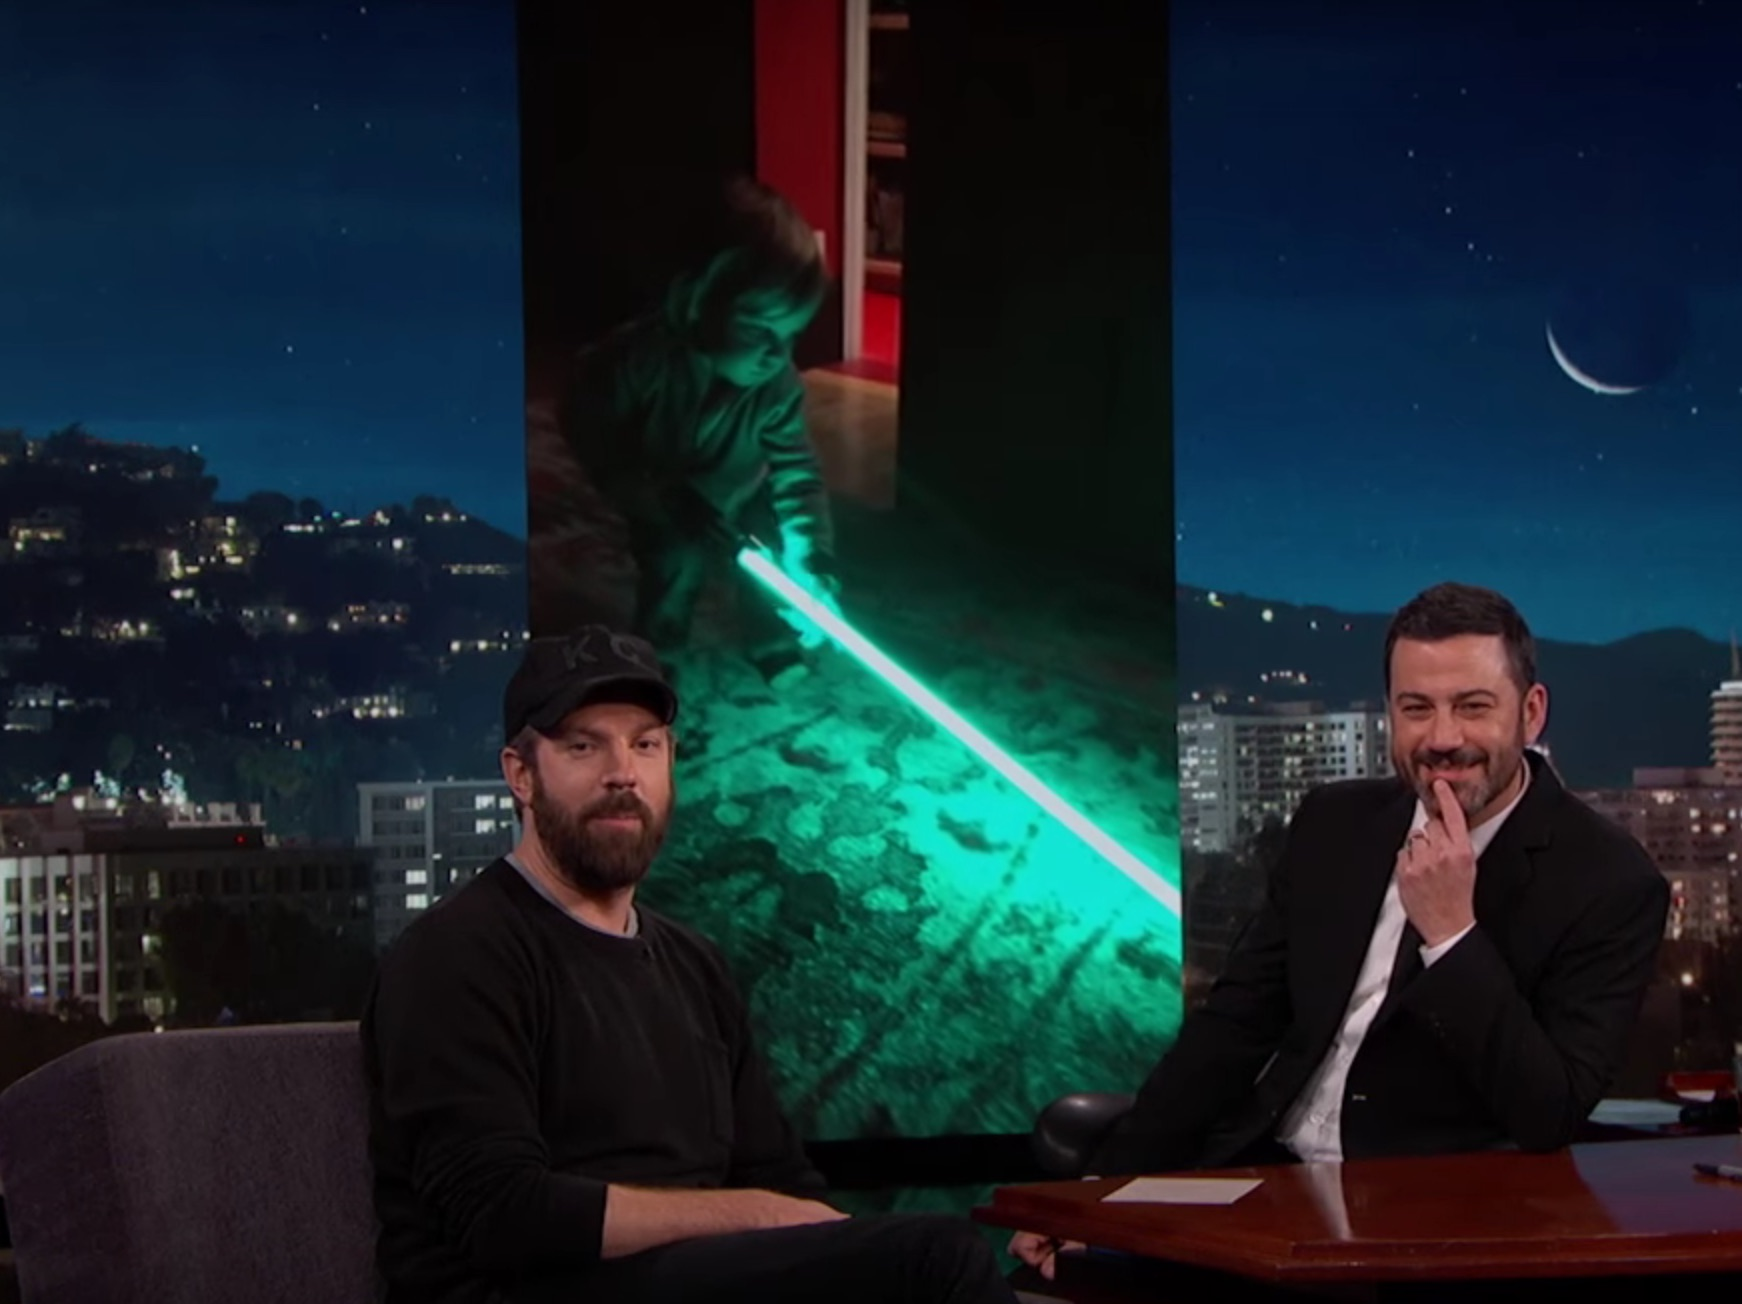 Watch Jason Sudeikis and Olivia Wilde's son have a hilariously hard time with his toy lightsaber